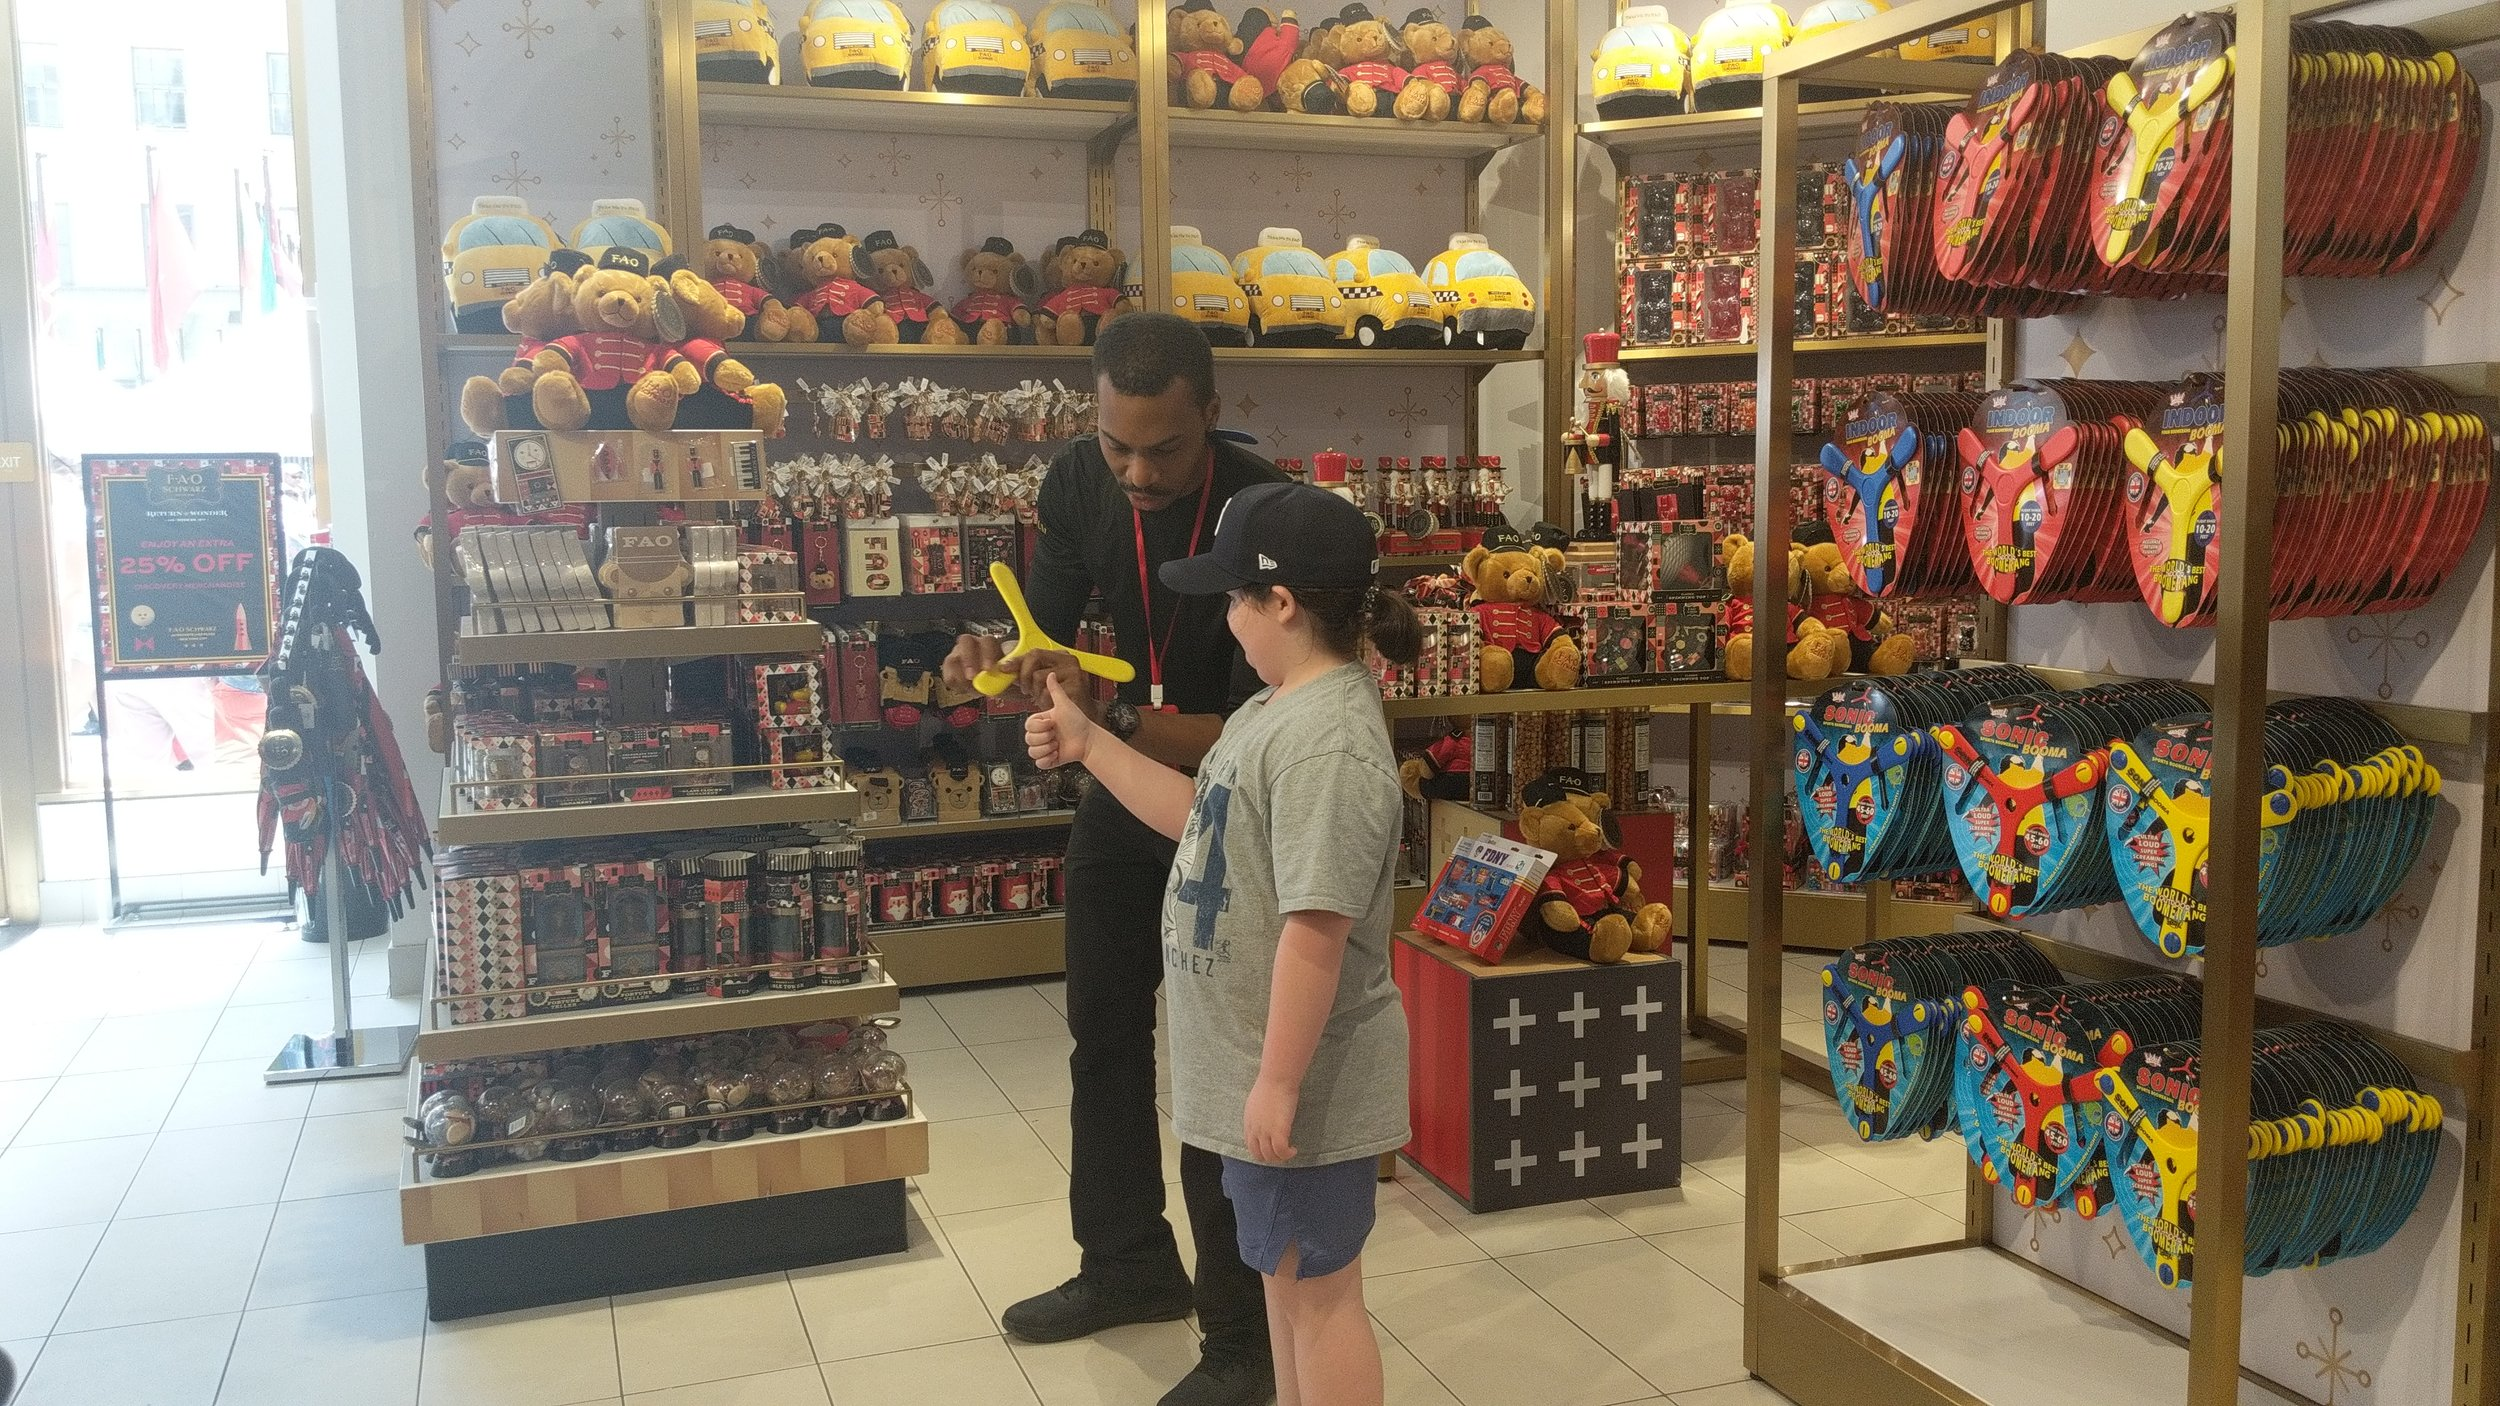 Learning about flying a boomerang from the fantastically fun guy at FAO Schwartz.